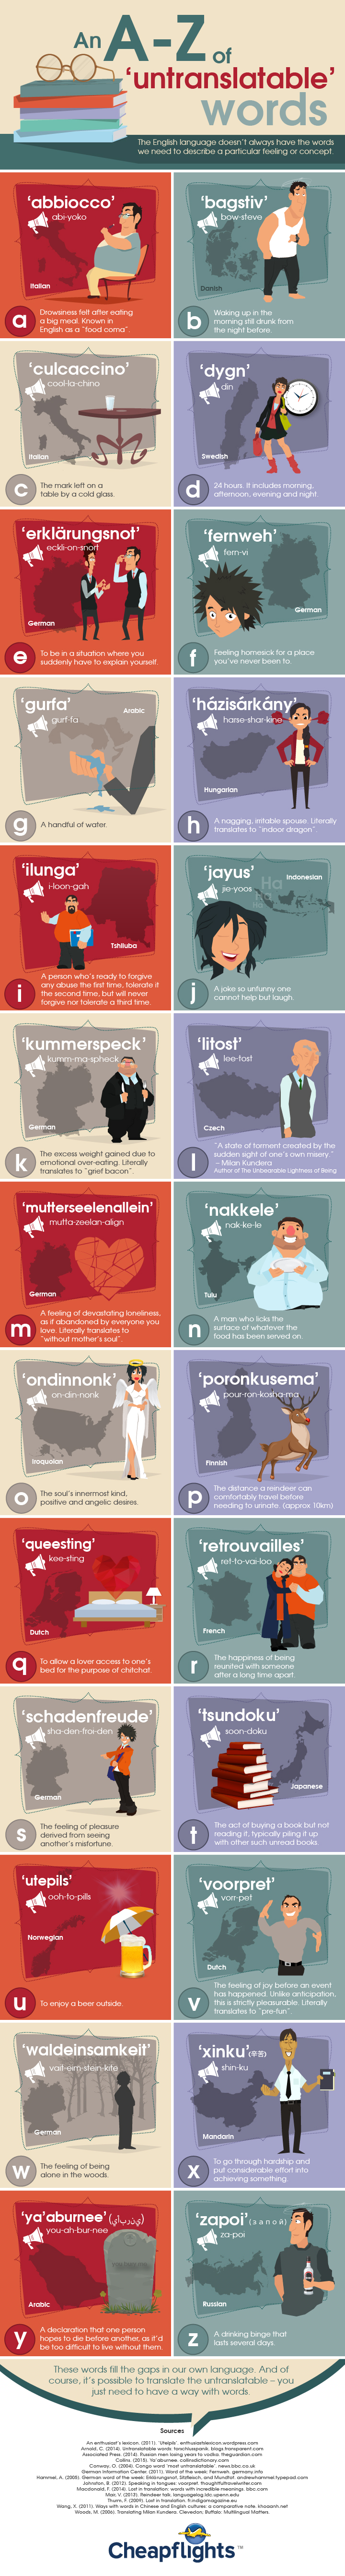 an-a-z-of-untranslatable-words